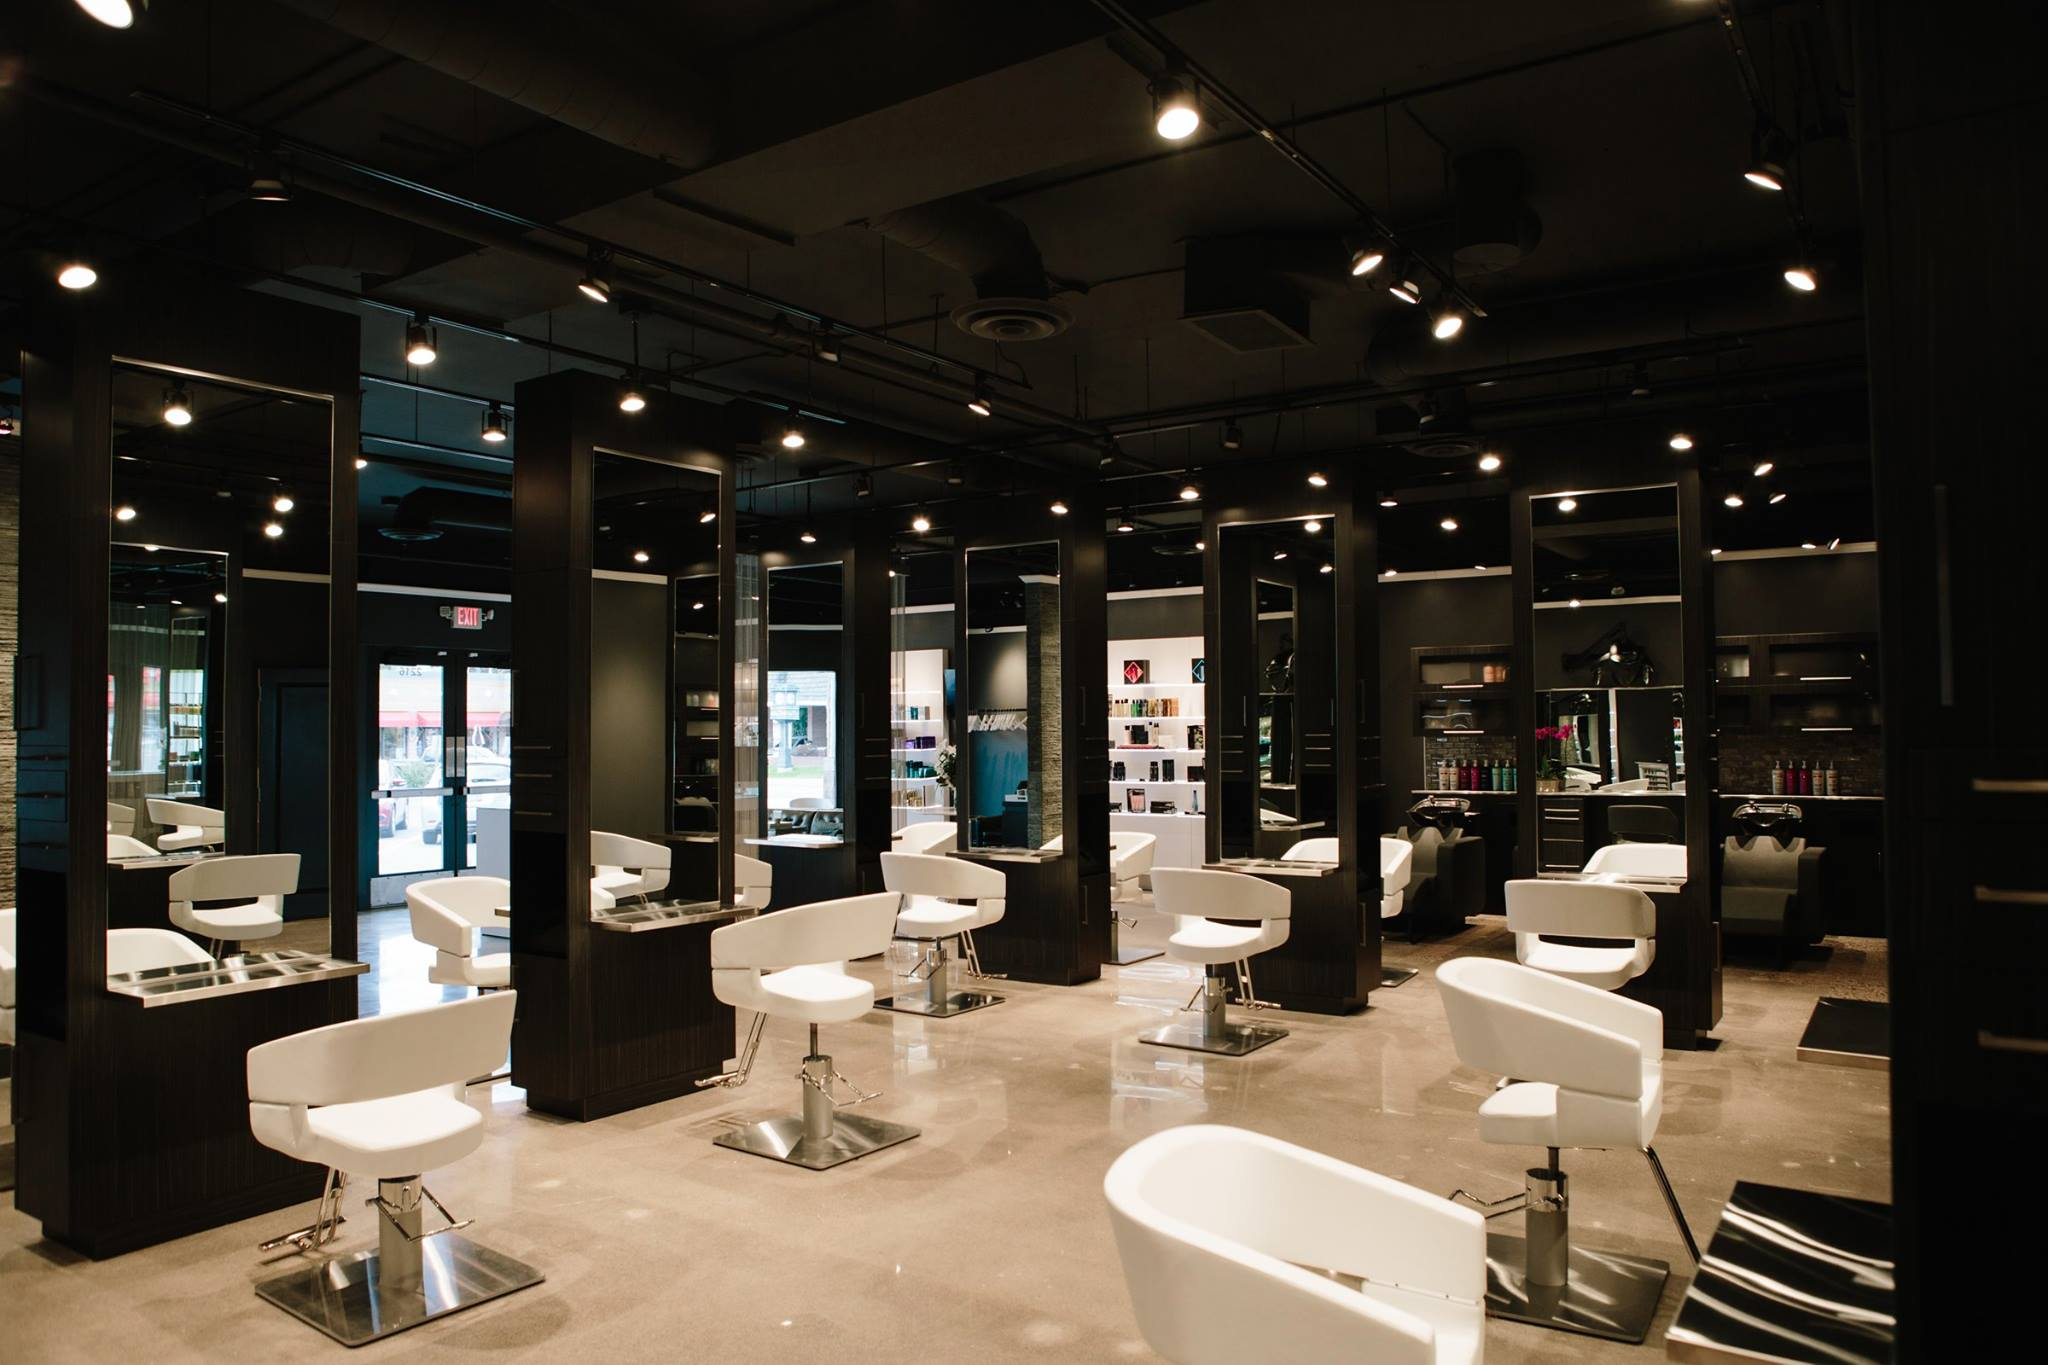 Salon Renovations and Remodeling